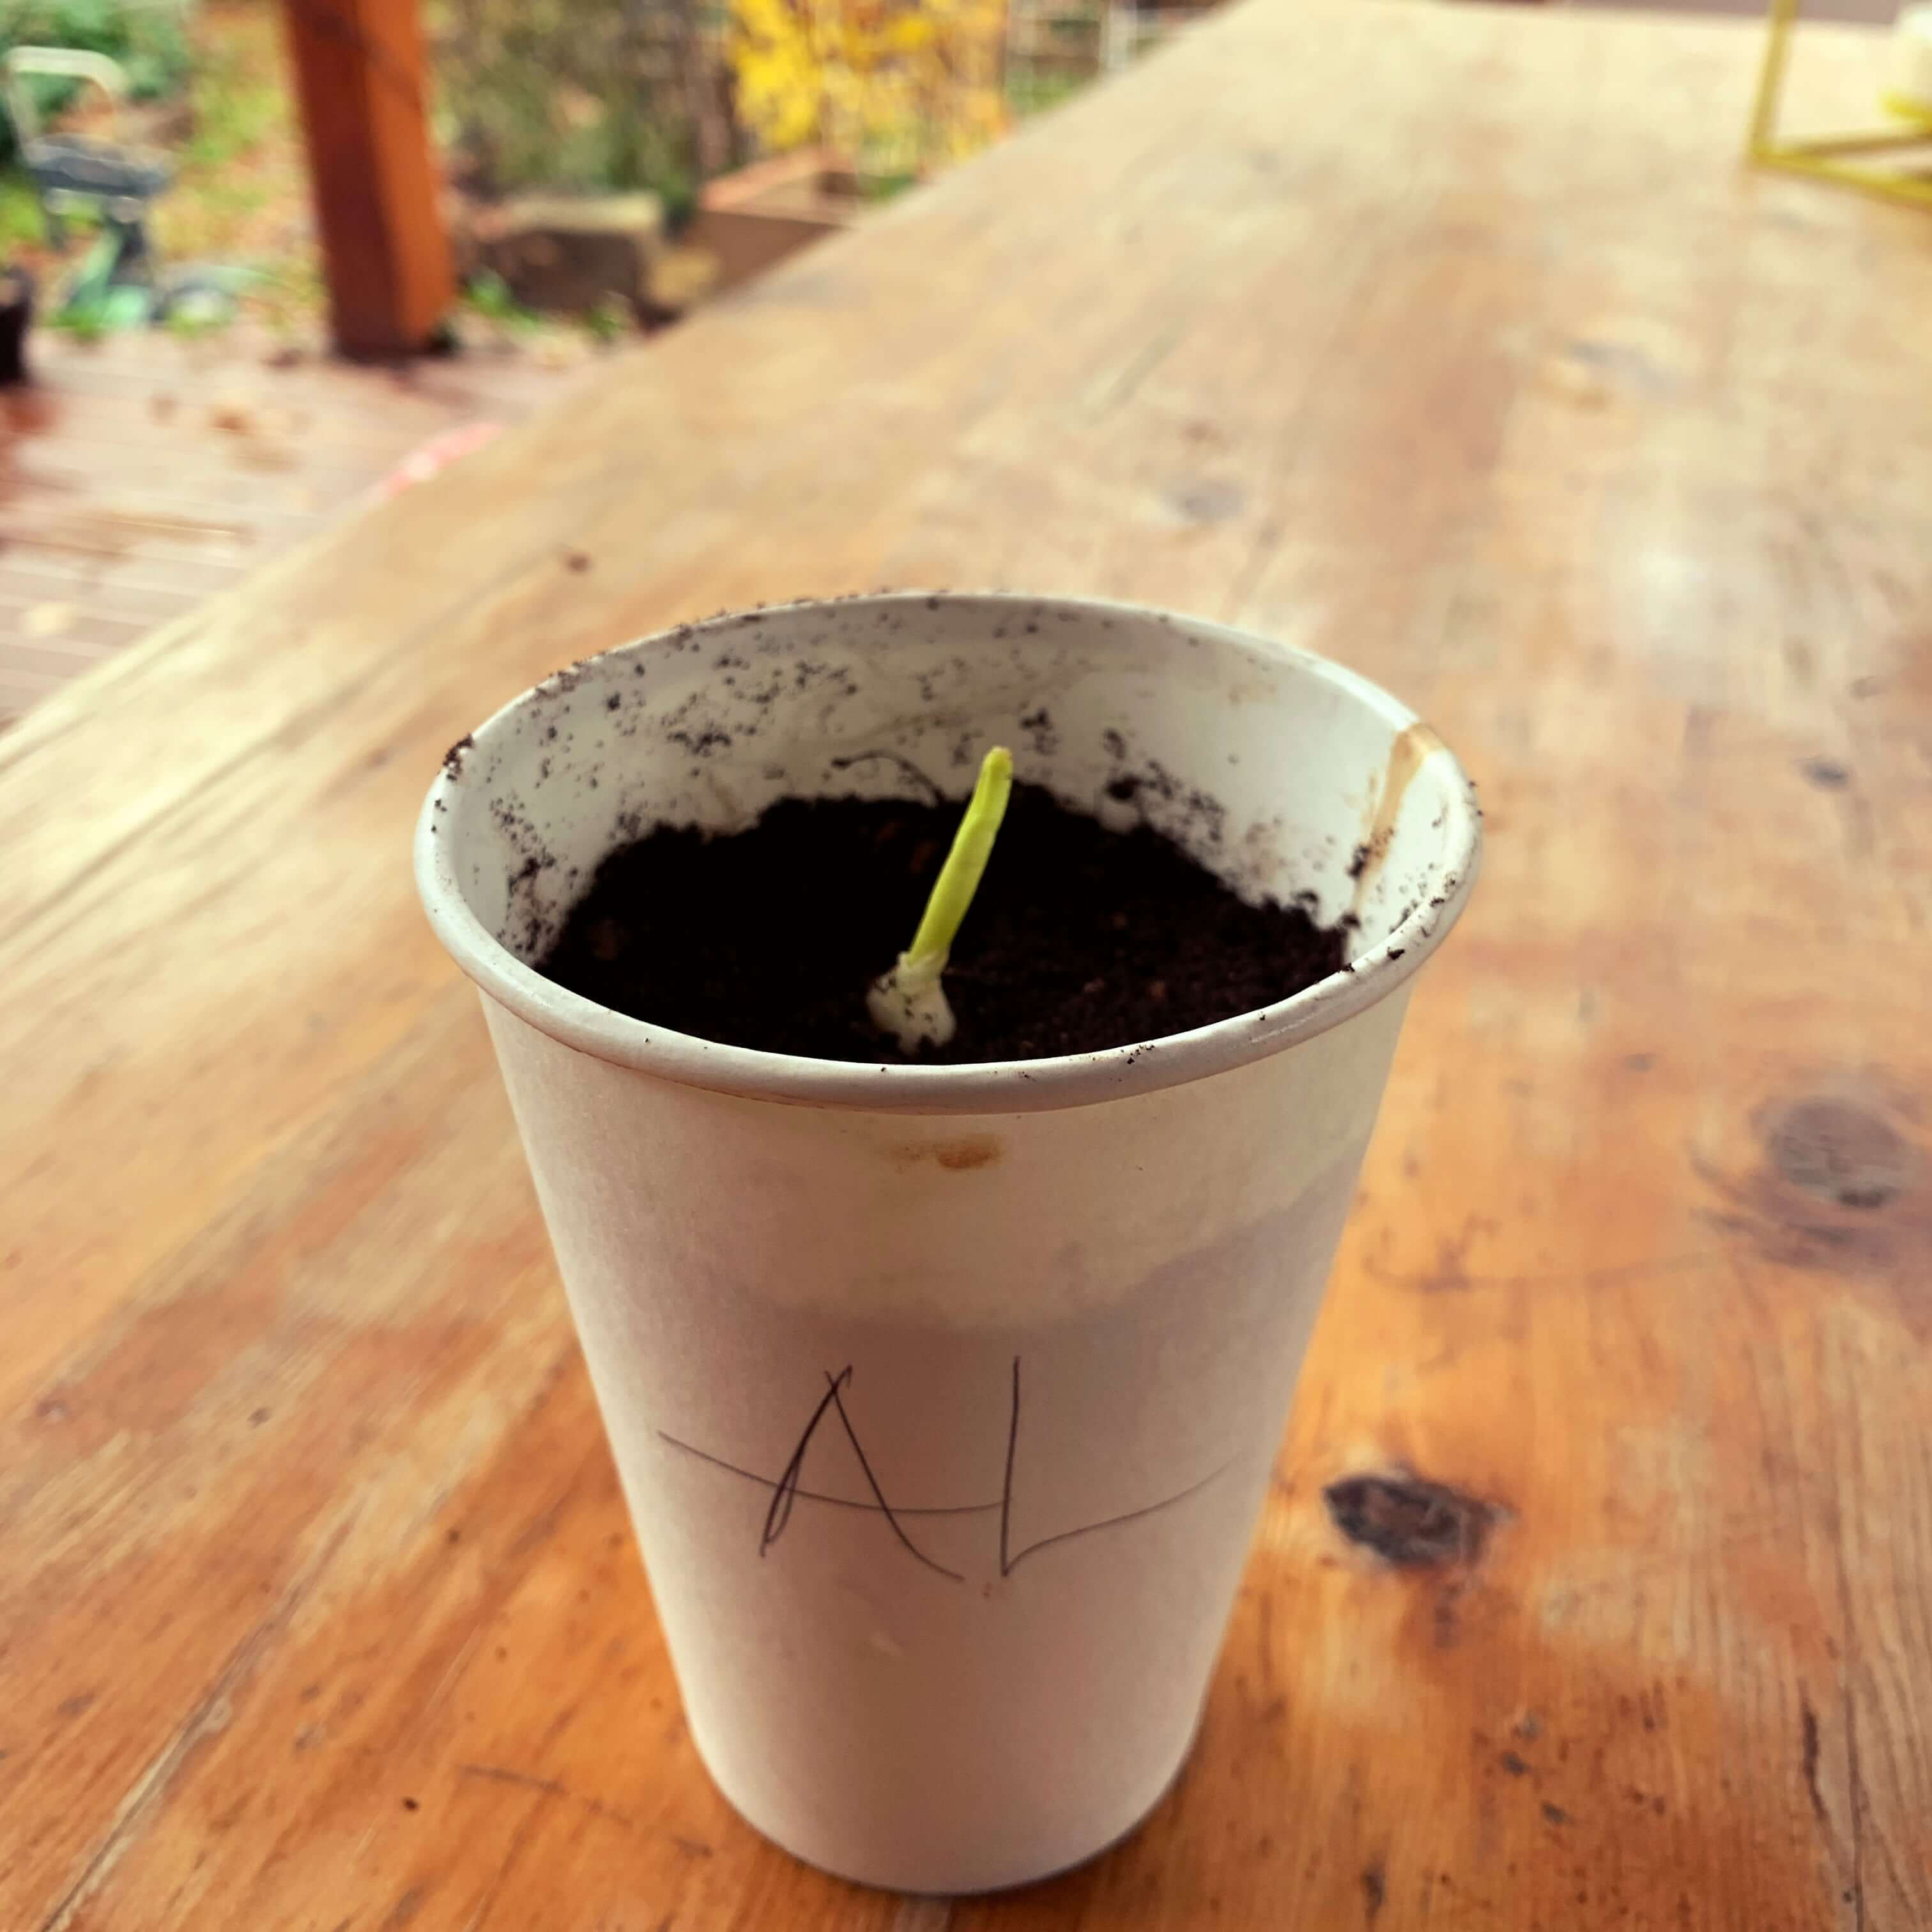 Reusing a takeaway coffee cup